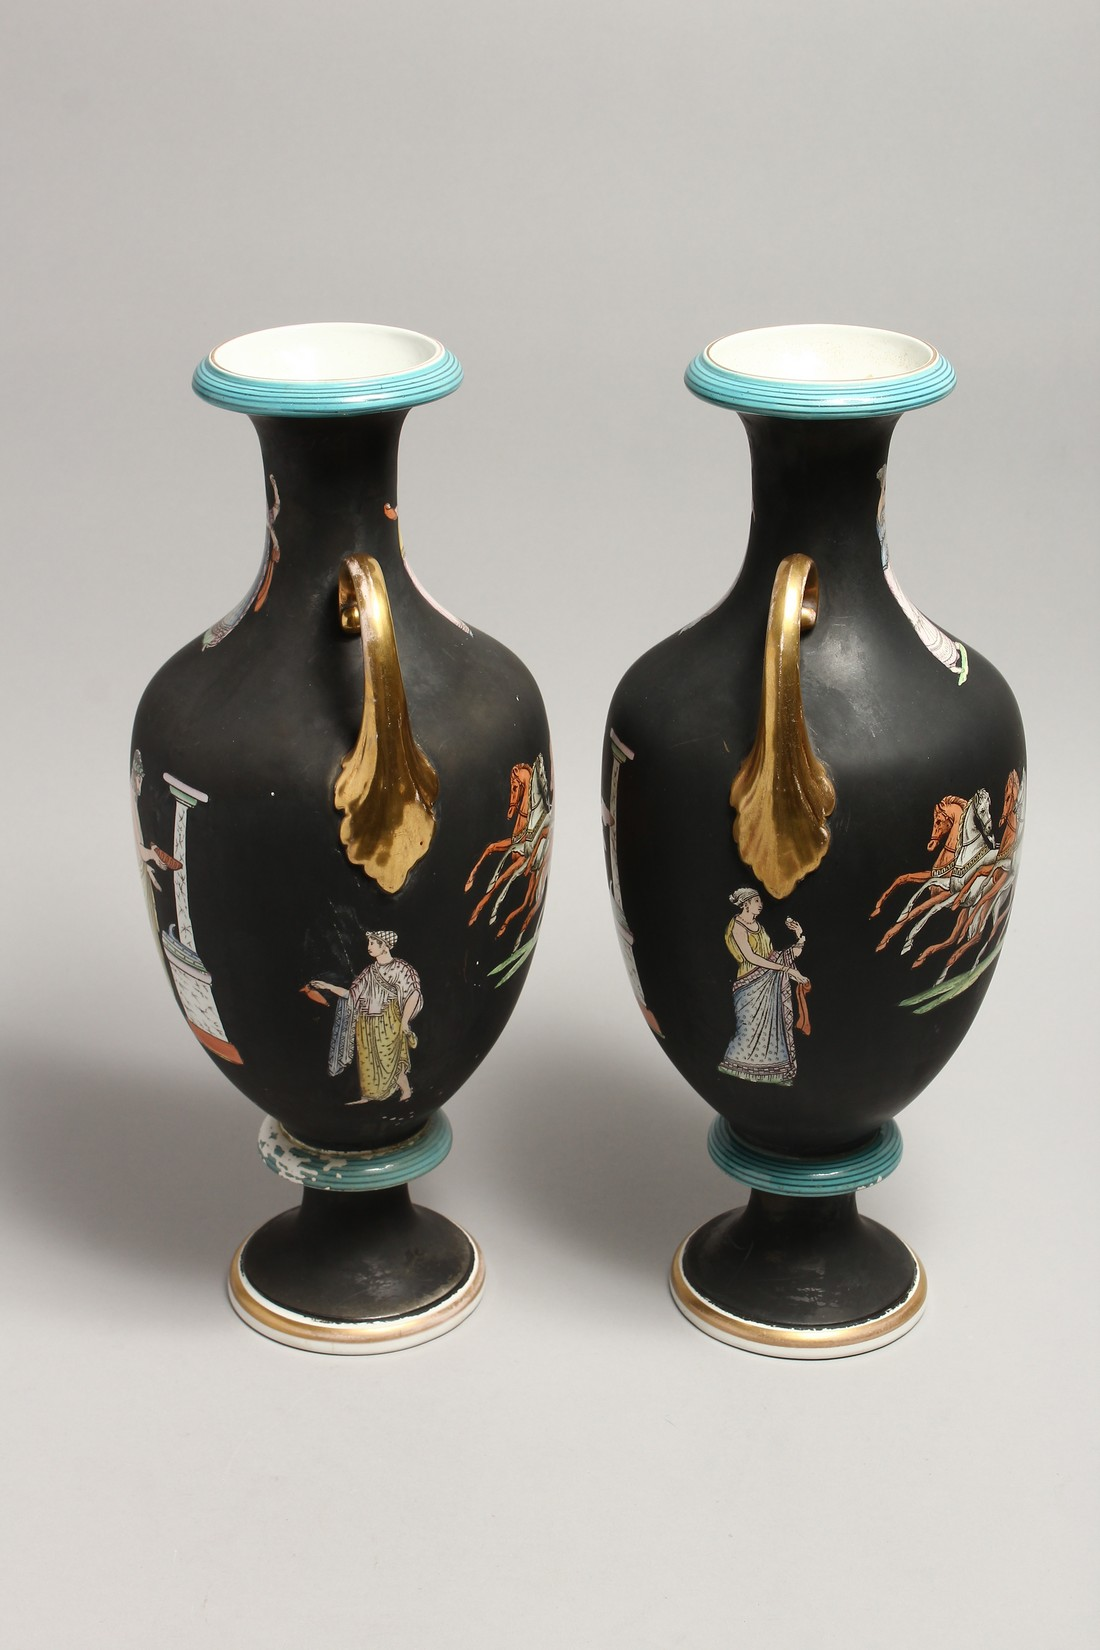 A PAIR OF CLASSICAL TWO HANDLED VASES with Greek figures 16ins high. - Image 5 of 7